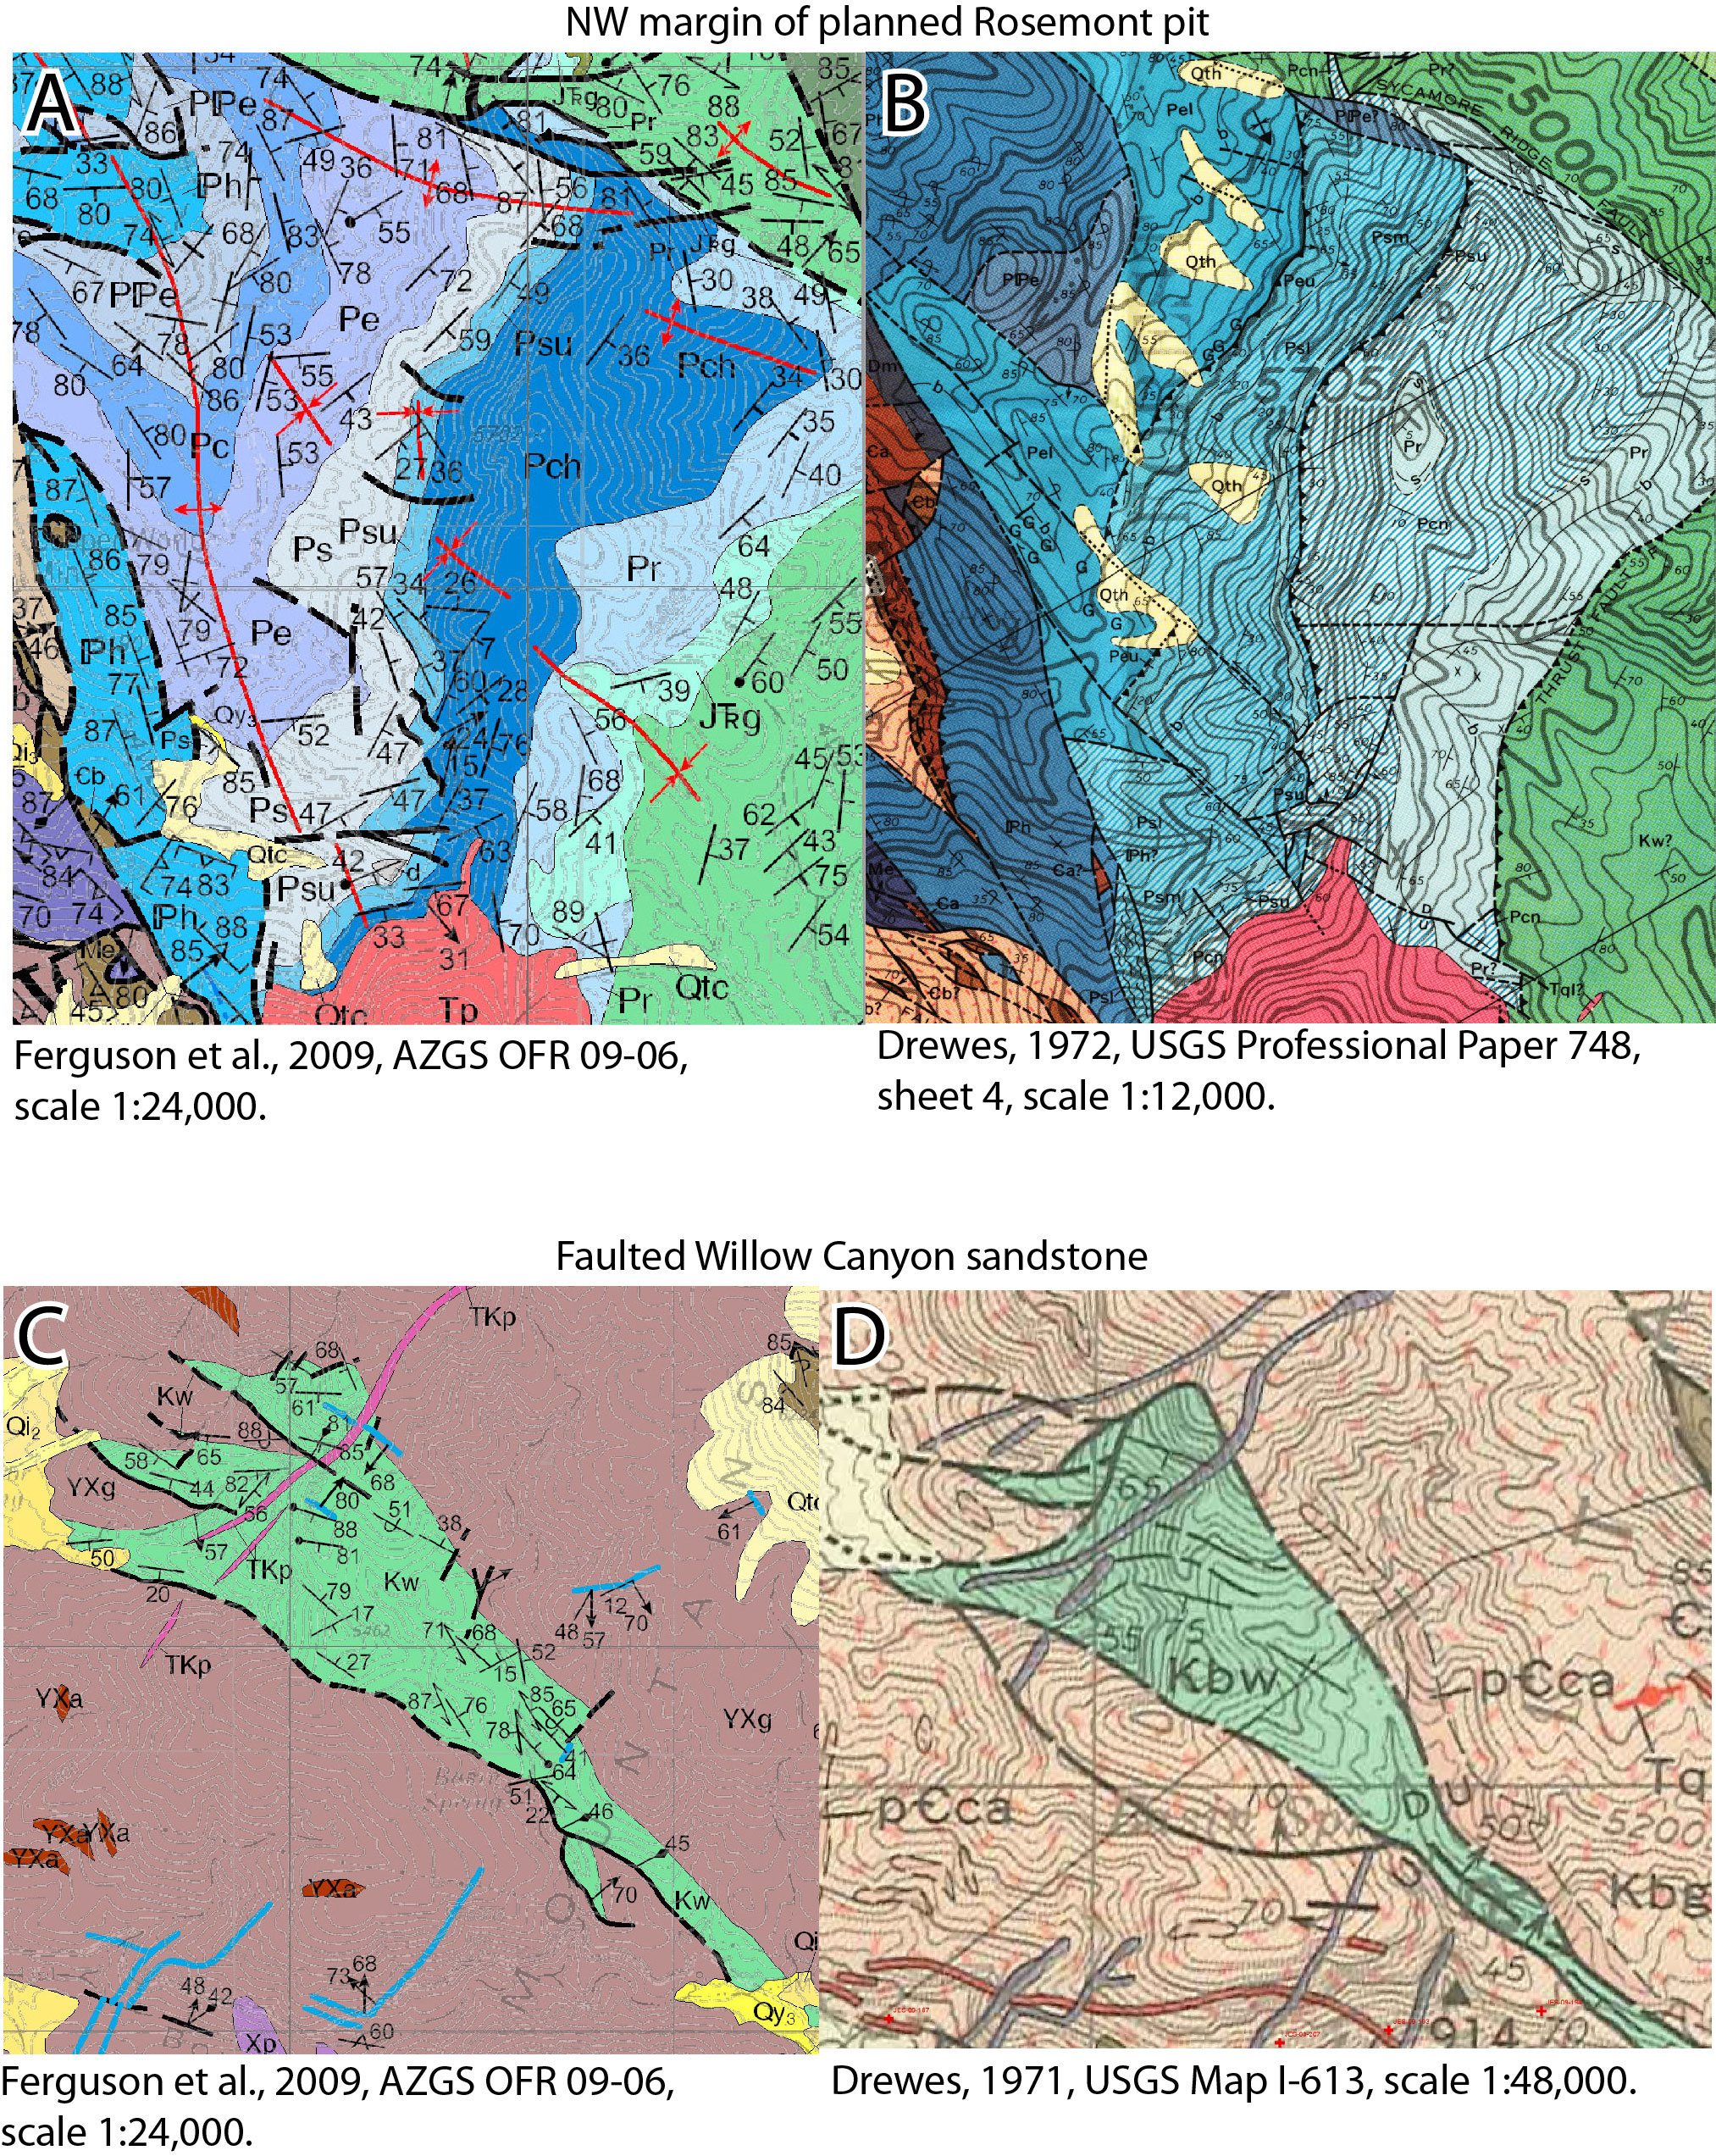 Figure 3. Geologic mapping of parts of the Helvetia 7 ½' Quadrangle by the Arizona Geological Survey (left, from Ferguson et al., 2009) compared to previous mapping by Drewes (right, 1971, 1972).